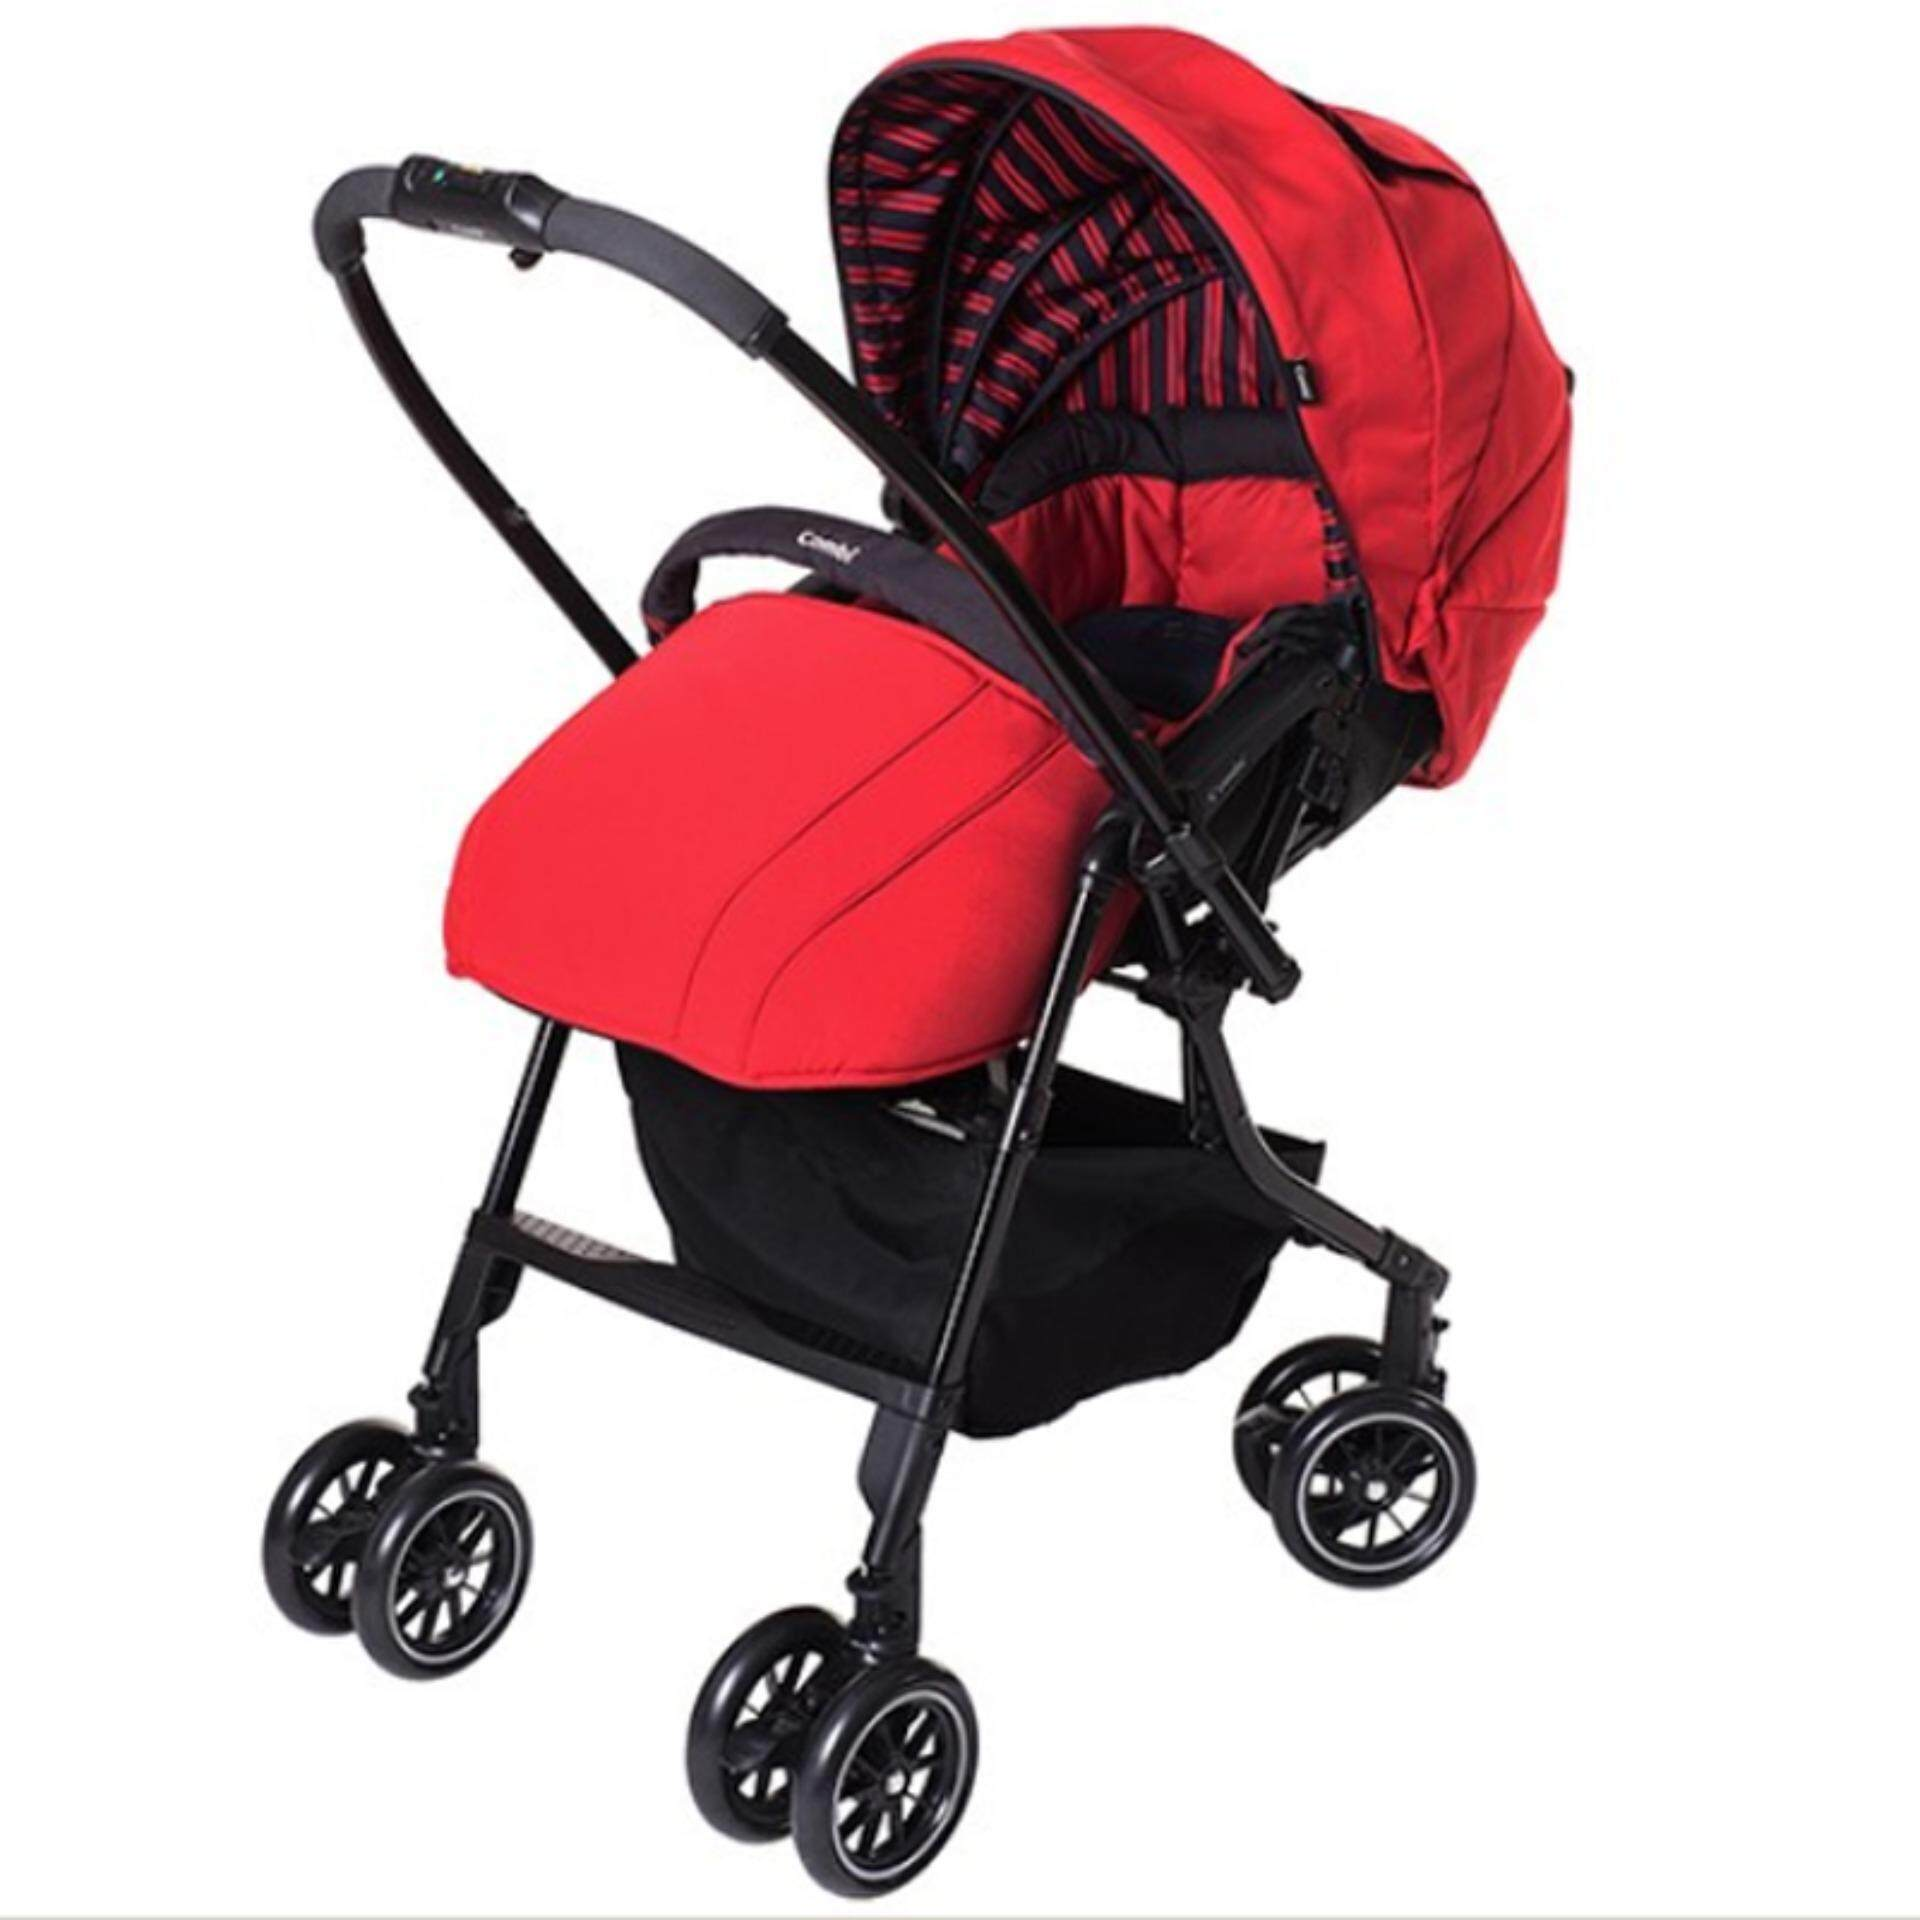 Combi Baby Stroller High Seat 55cm Auto 4 Swivel Wheels Super Light Weight Red